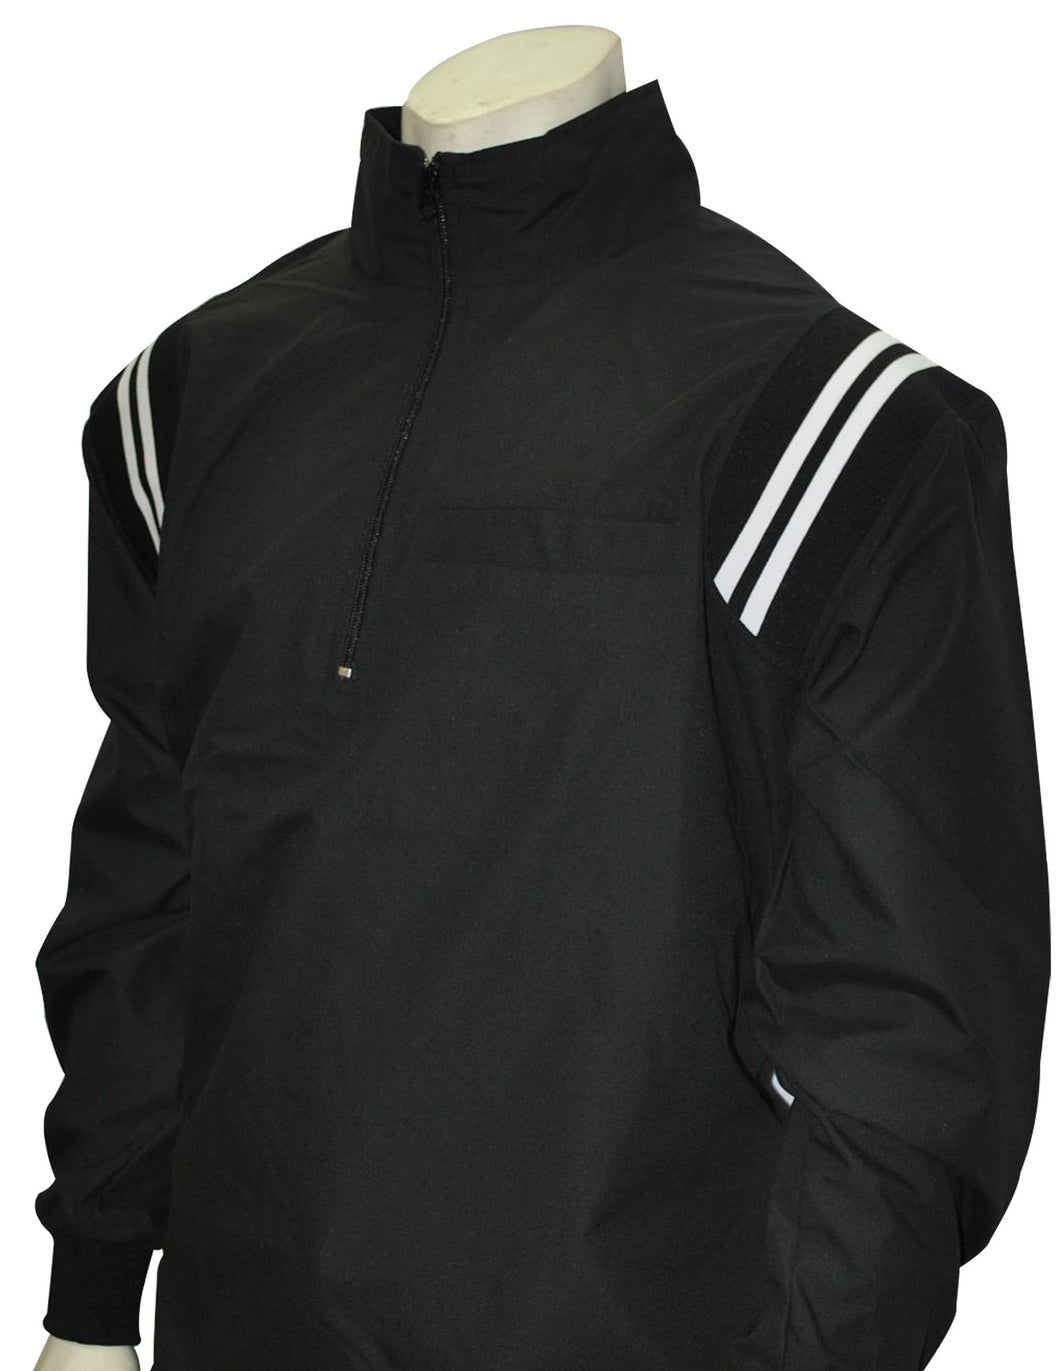 BBS322-Smitty Long Sleeve Microfiber Shell Pullover Jacket w/ Half Zipper w/ Open Bottom